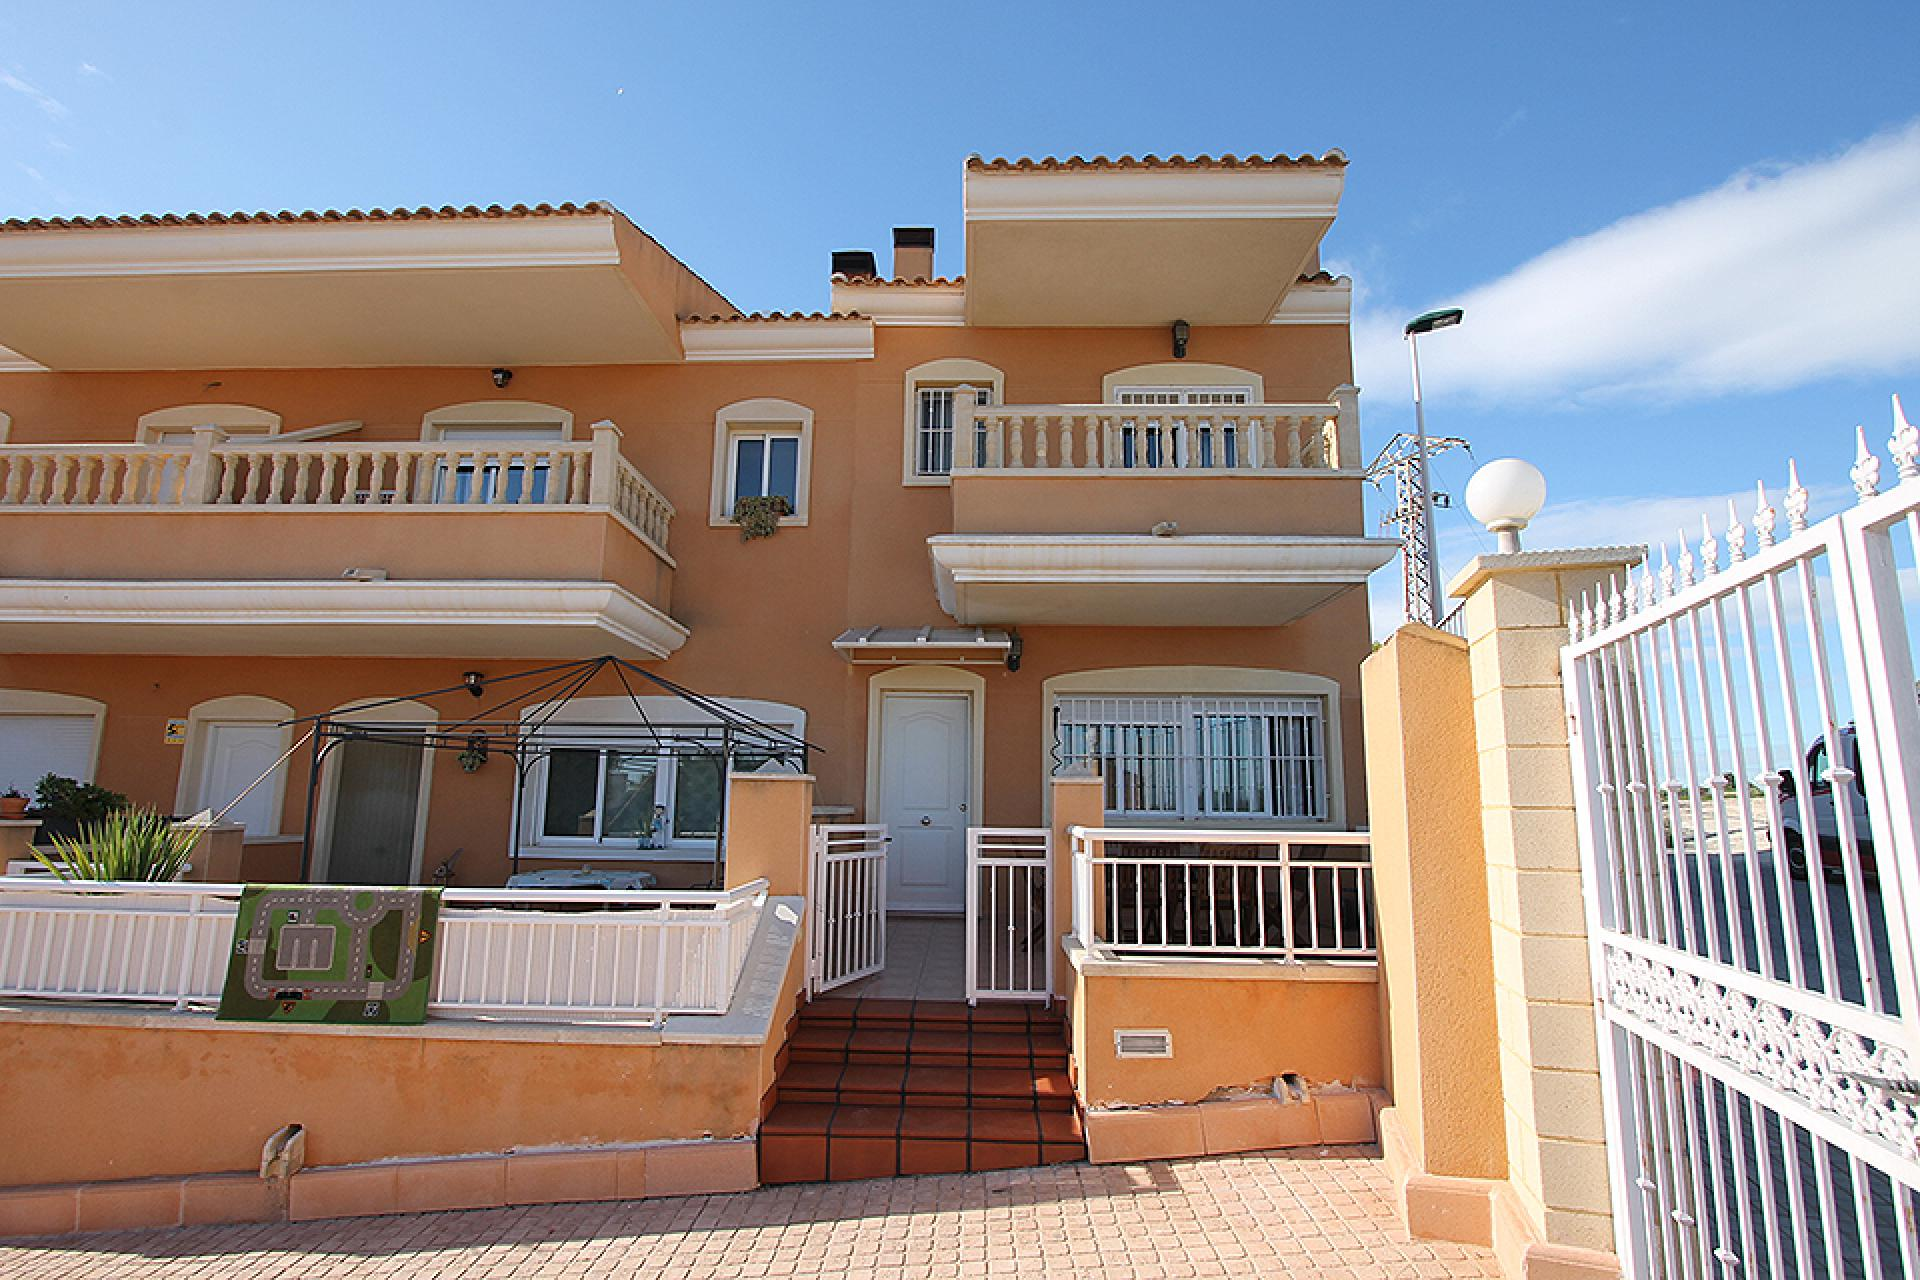 Townhouse in Gran Alacant (Alicante)